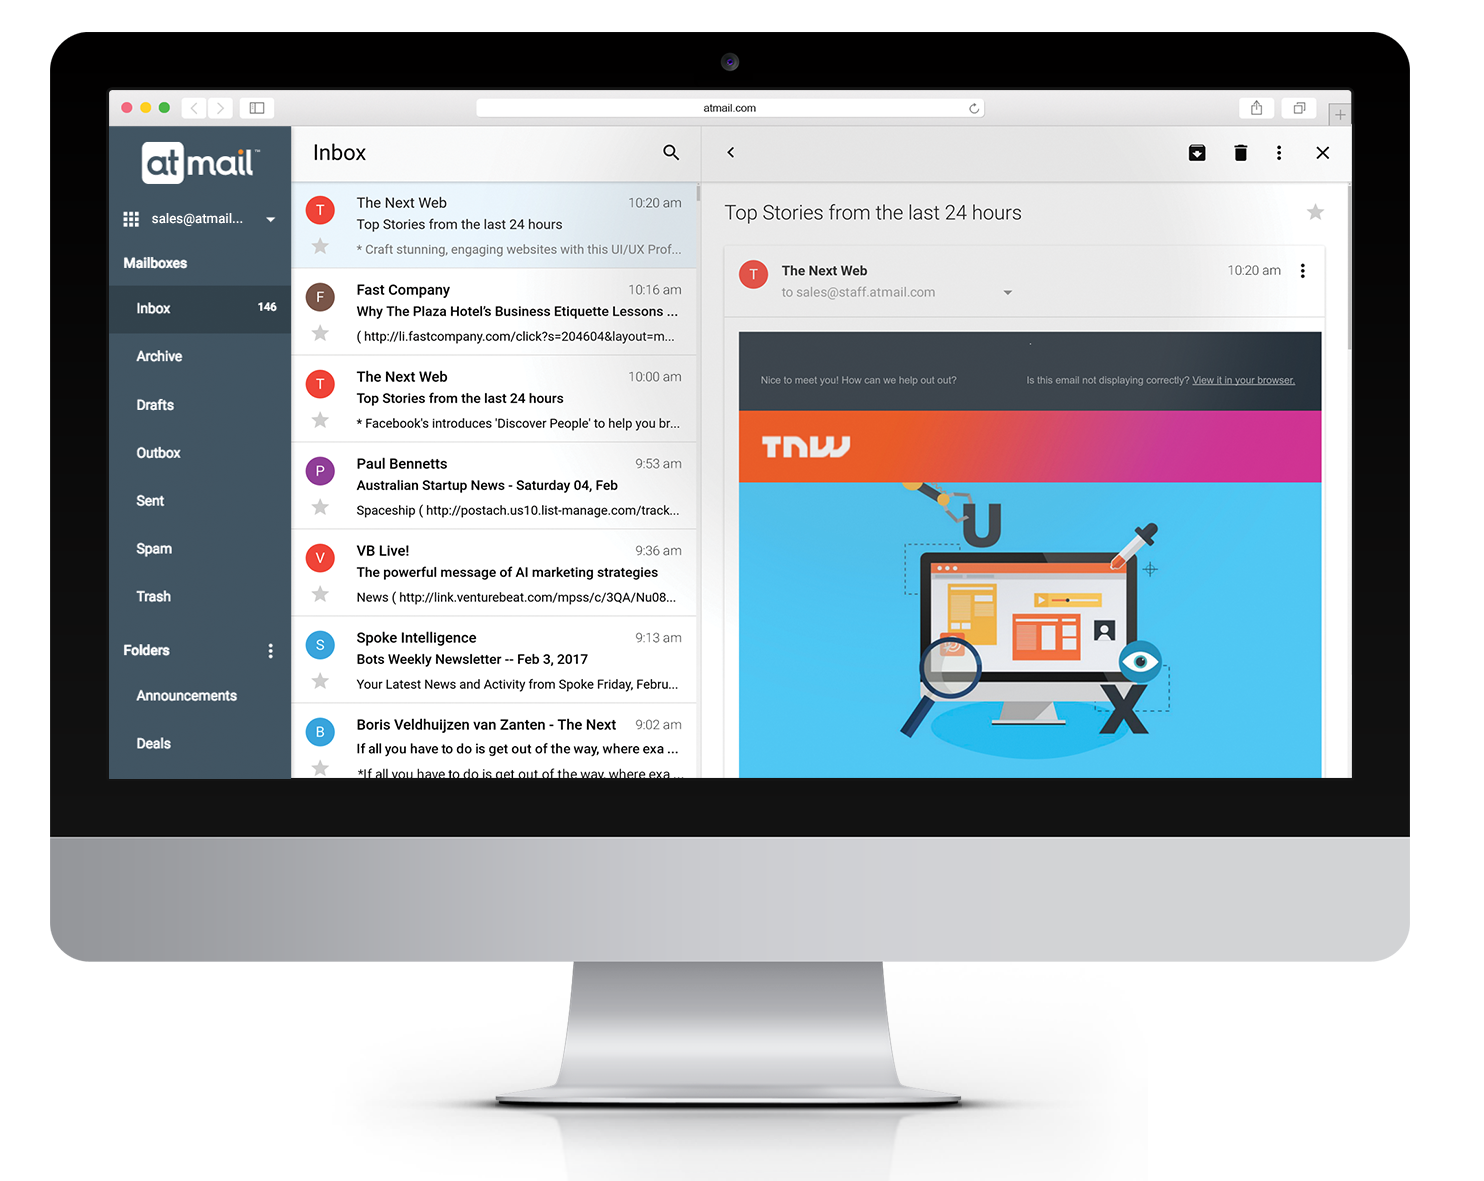 atmail suite - new navigation view - atmail email webmail